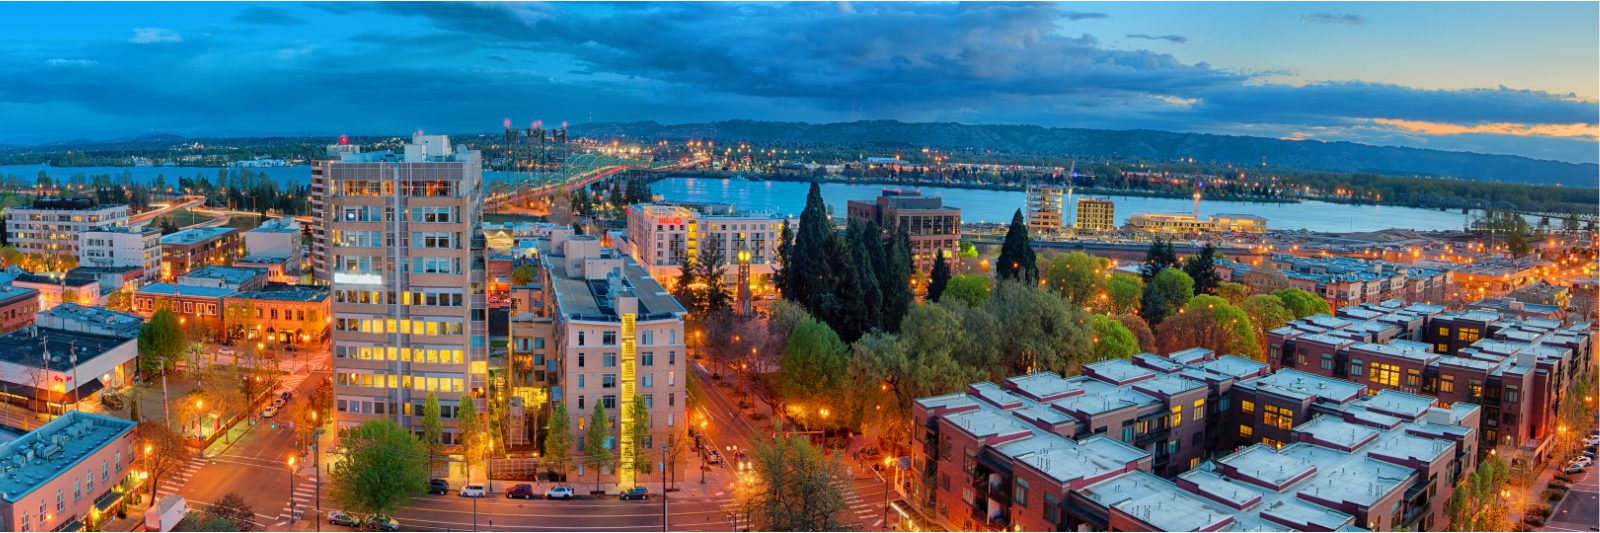 Image of downtown Vancouver Washington at dusk looking south towards the Columbia River.